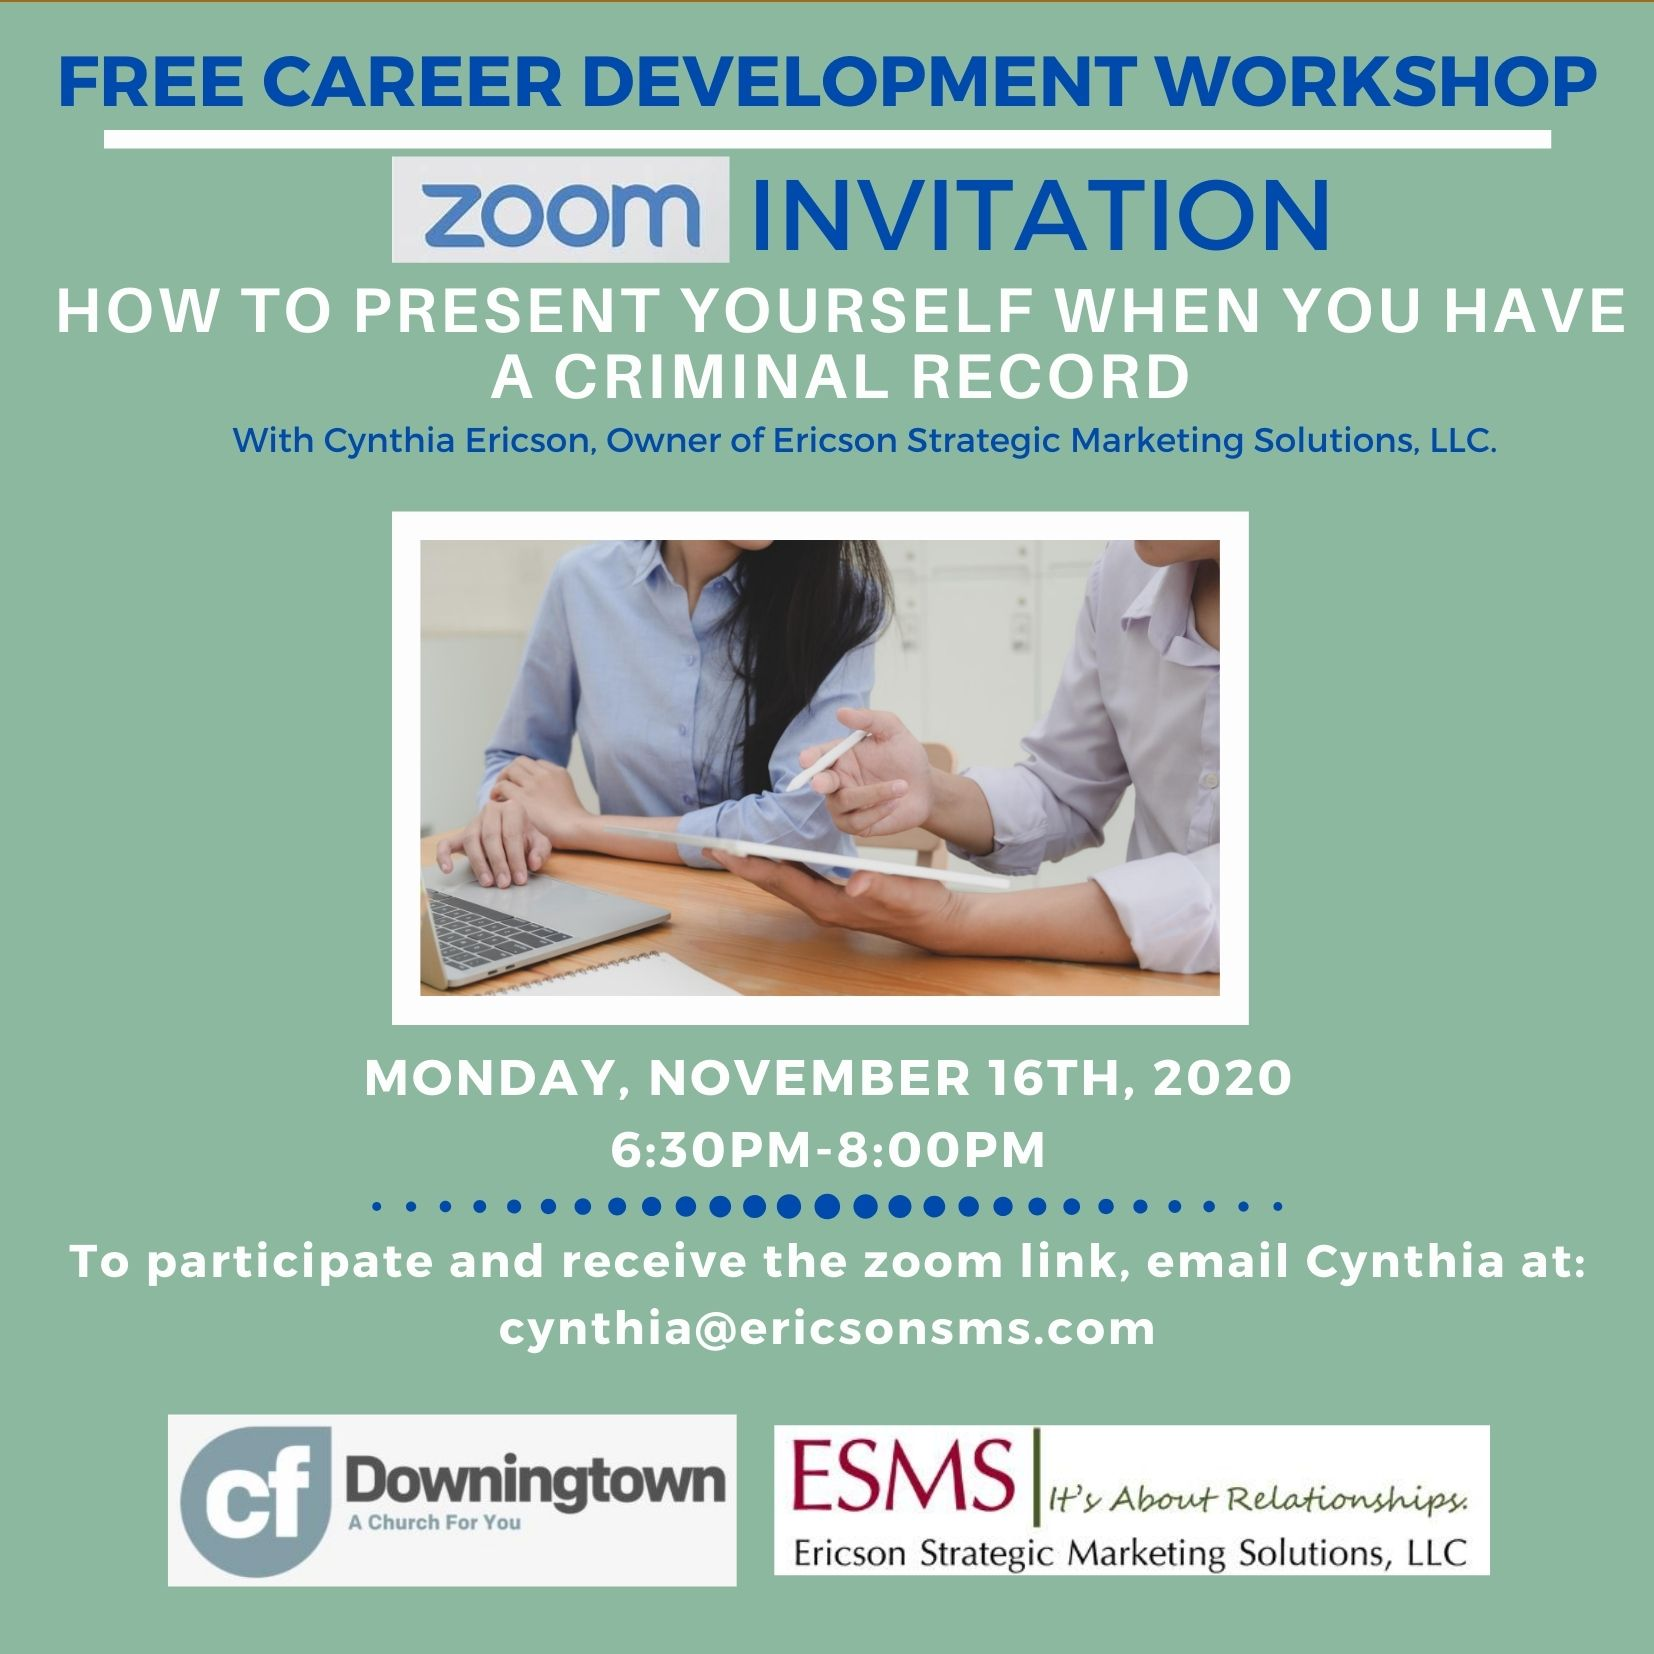 Free Career Development Workshops